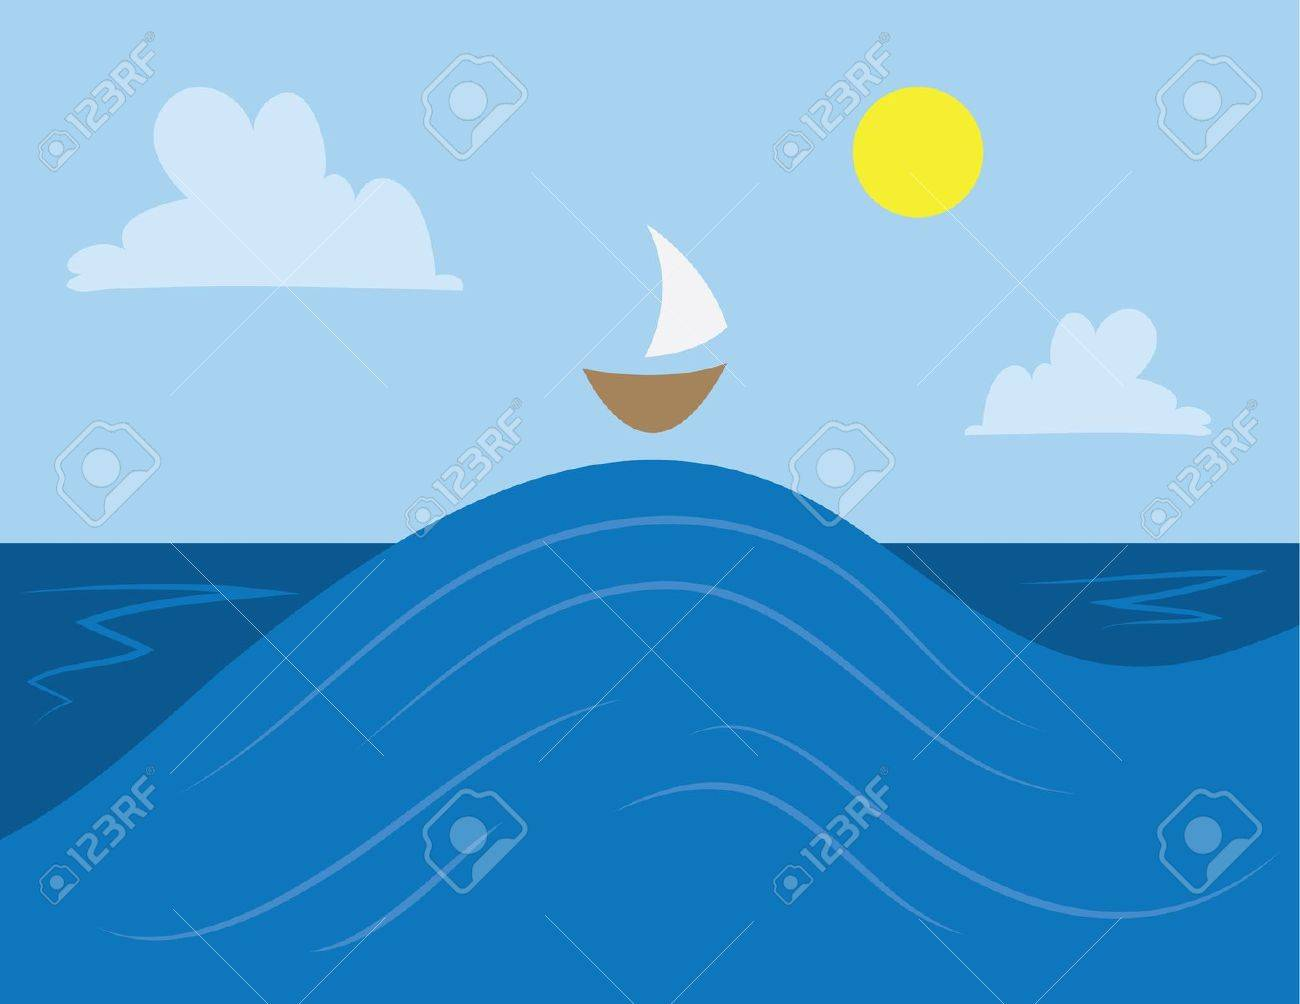 Ocean scene with a small boat on the top of a large wave royalty ocean scene with a small boat on the top of a large wave stock vector voltagebd Gallery